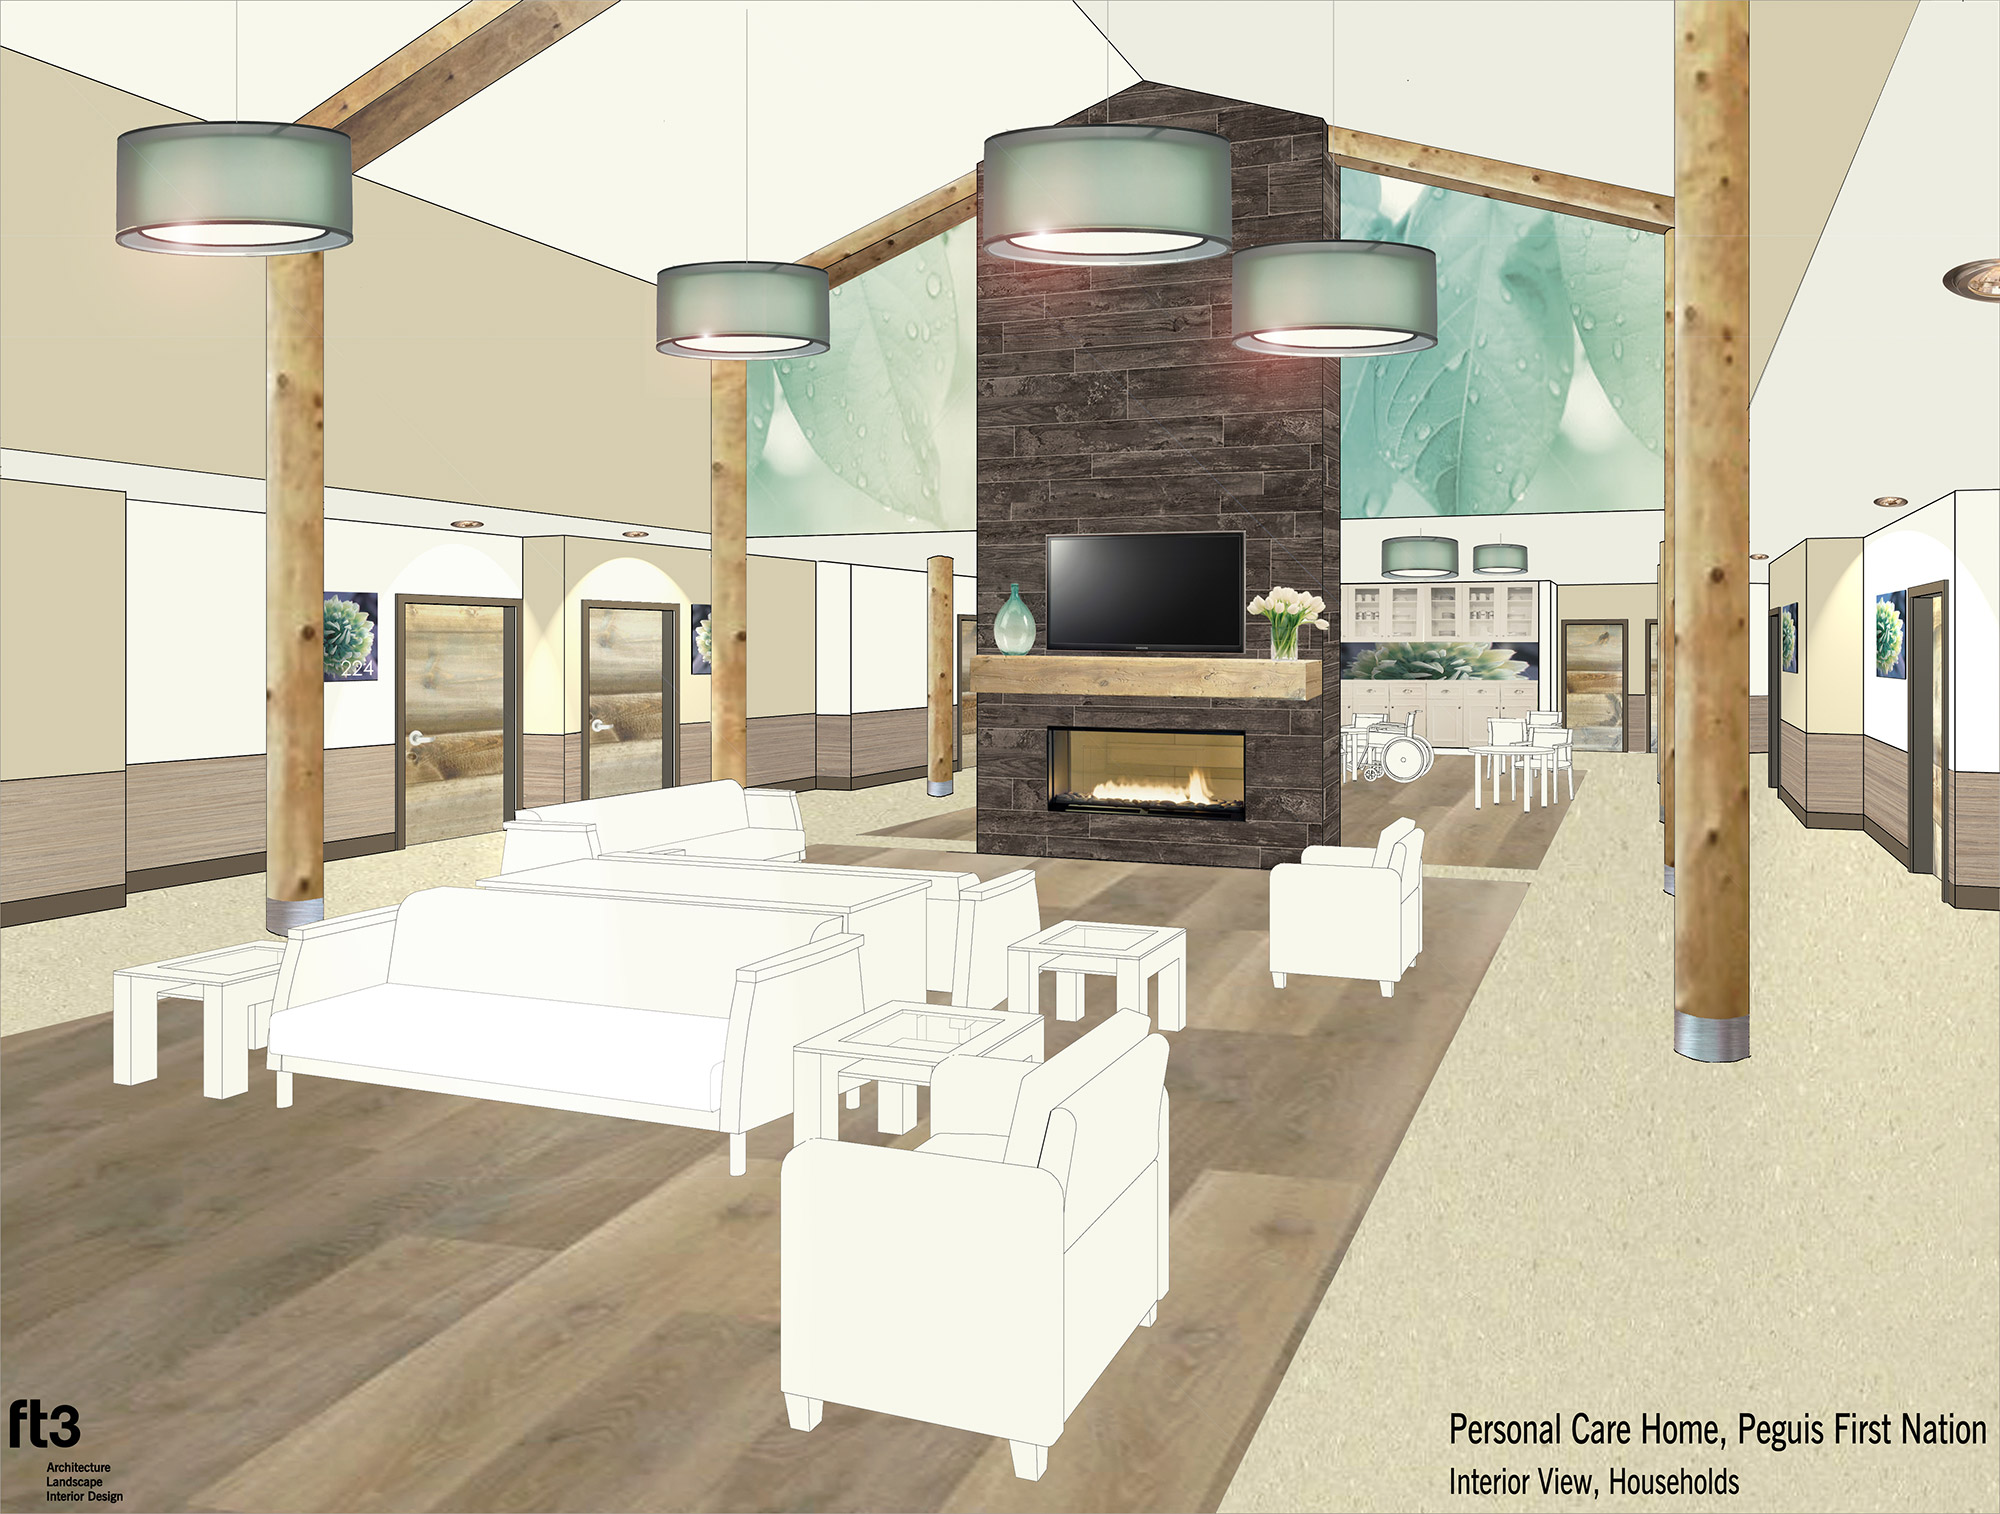 New personal care home project report peguis first nation New house project